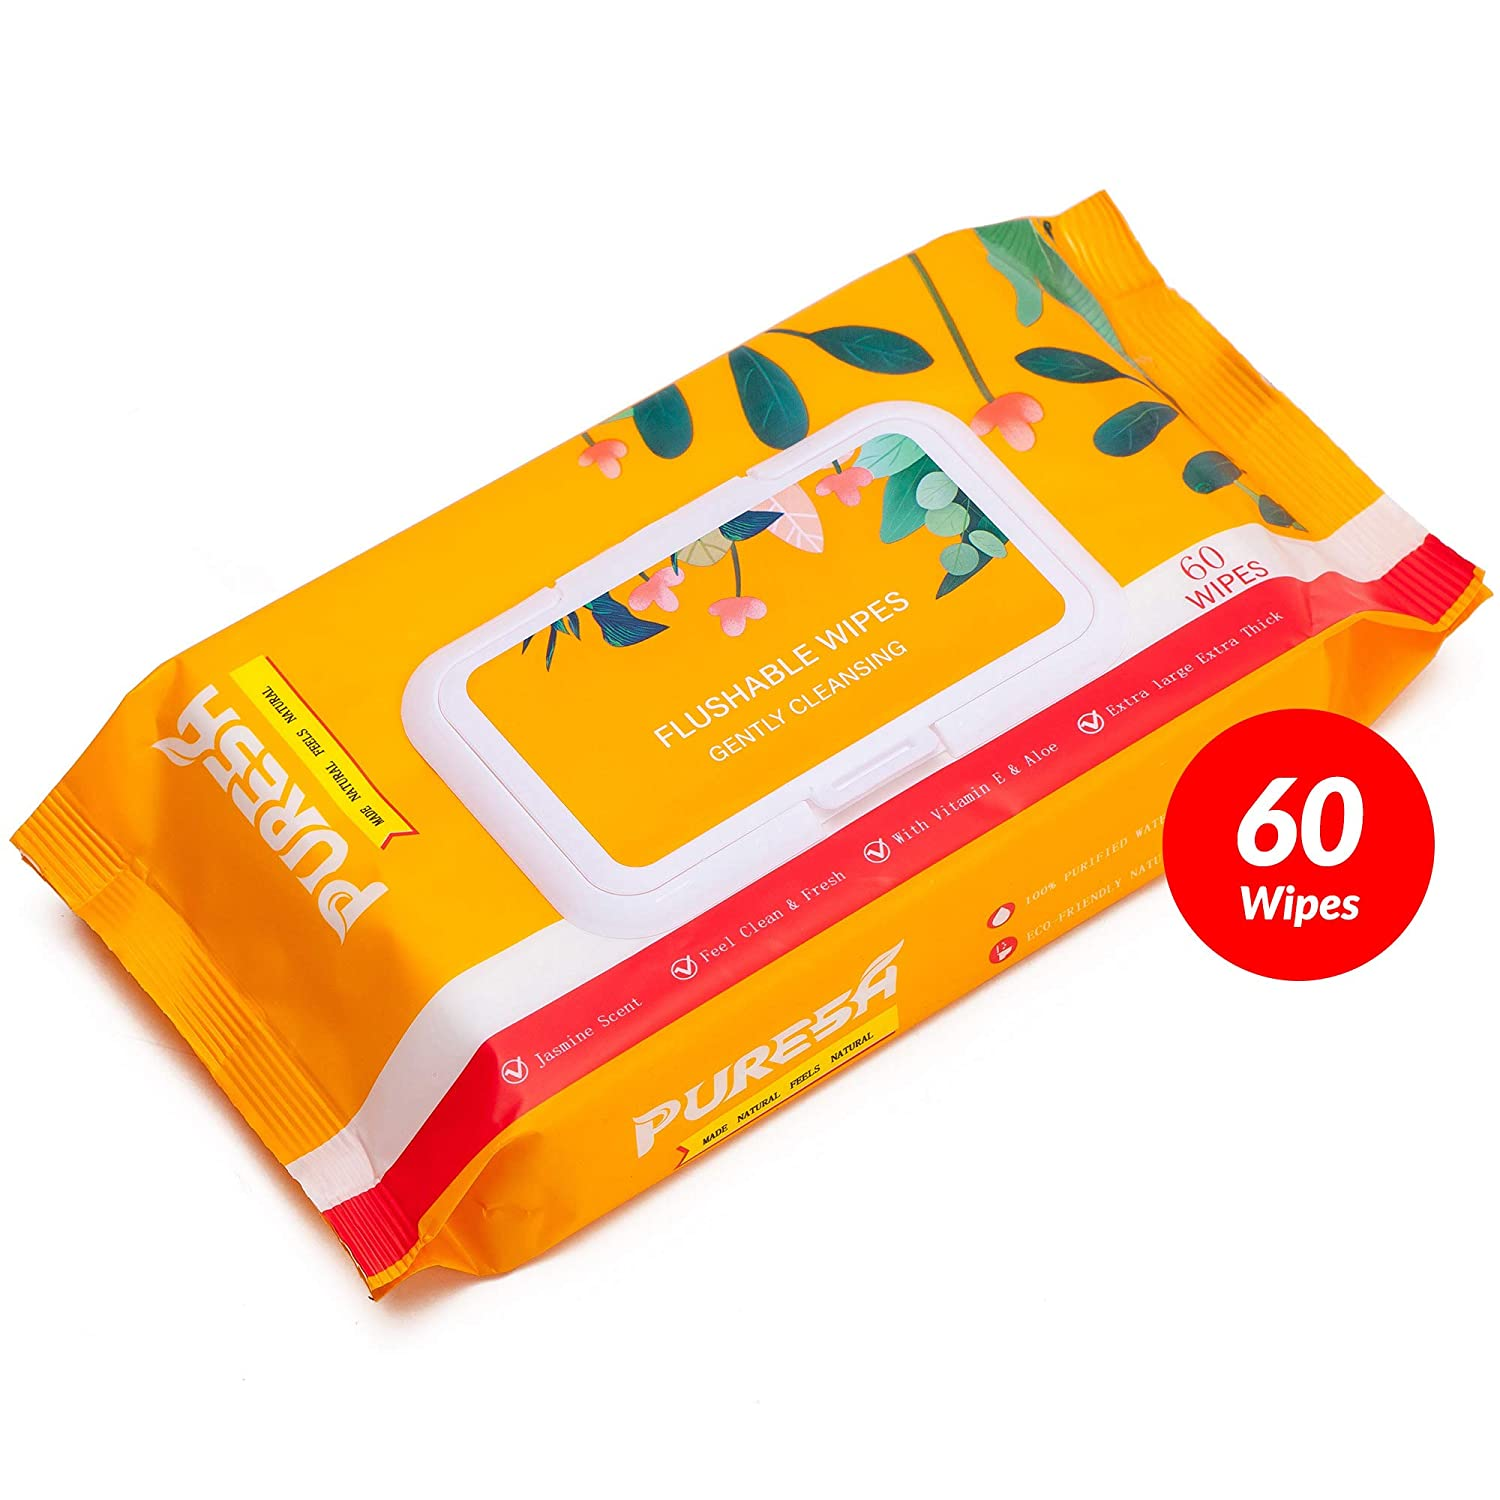 Sewer Safe Vitamin-E /& Aloe for at-Home Use Large Flushable Wet Wipes with Jasmine Scent General Purpose Personal Cleaning 60 Wipes, 1 Pack Puresh Feminine Wipes for Women Adults